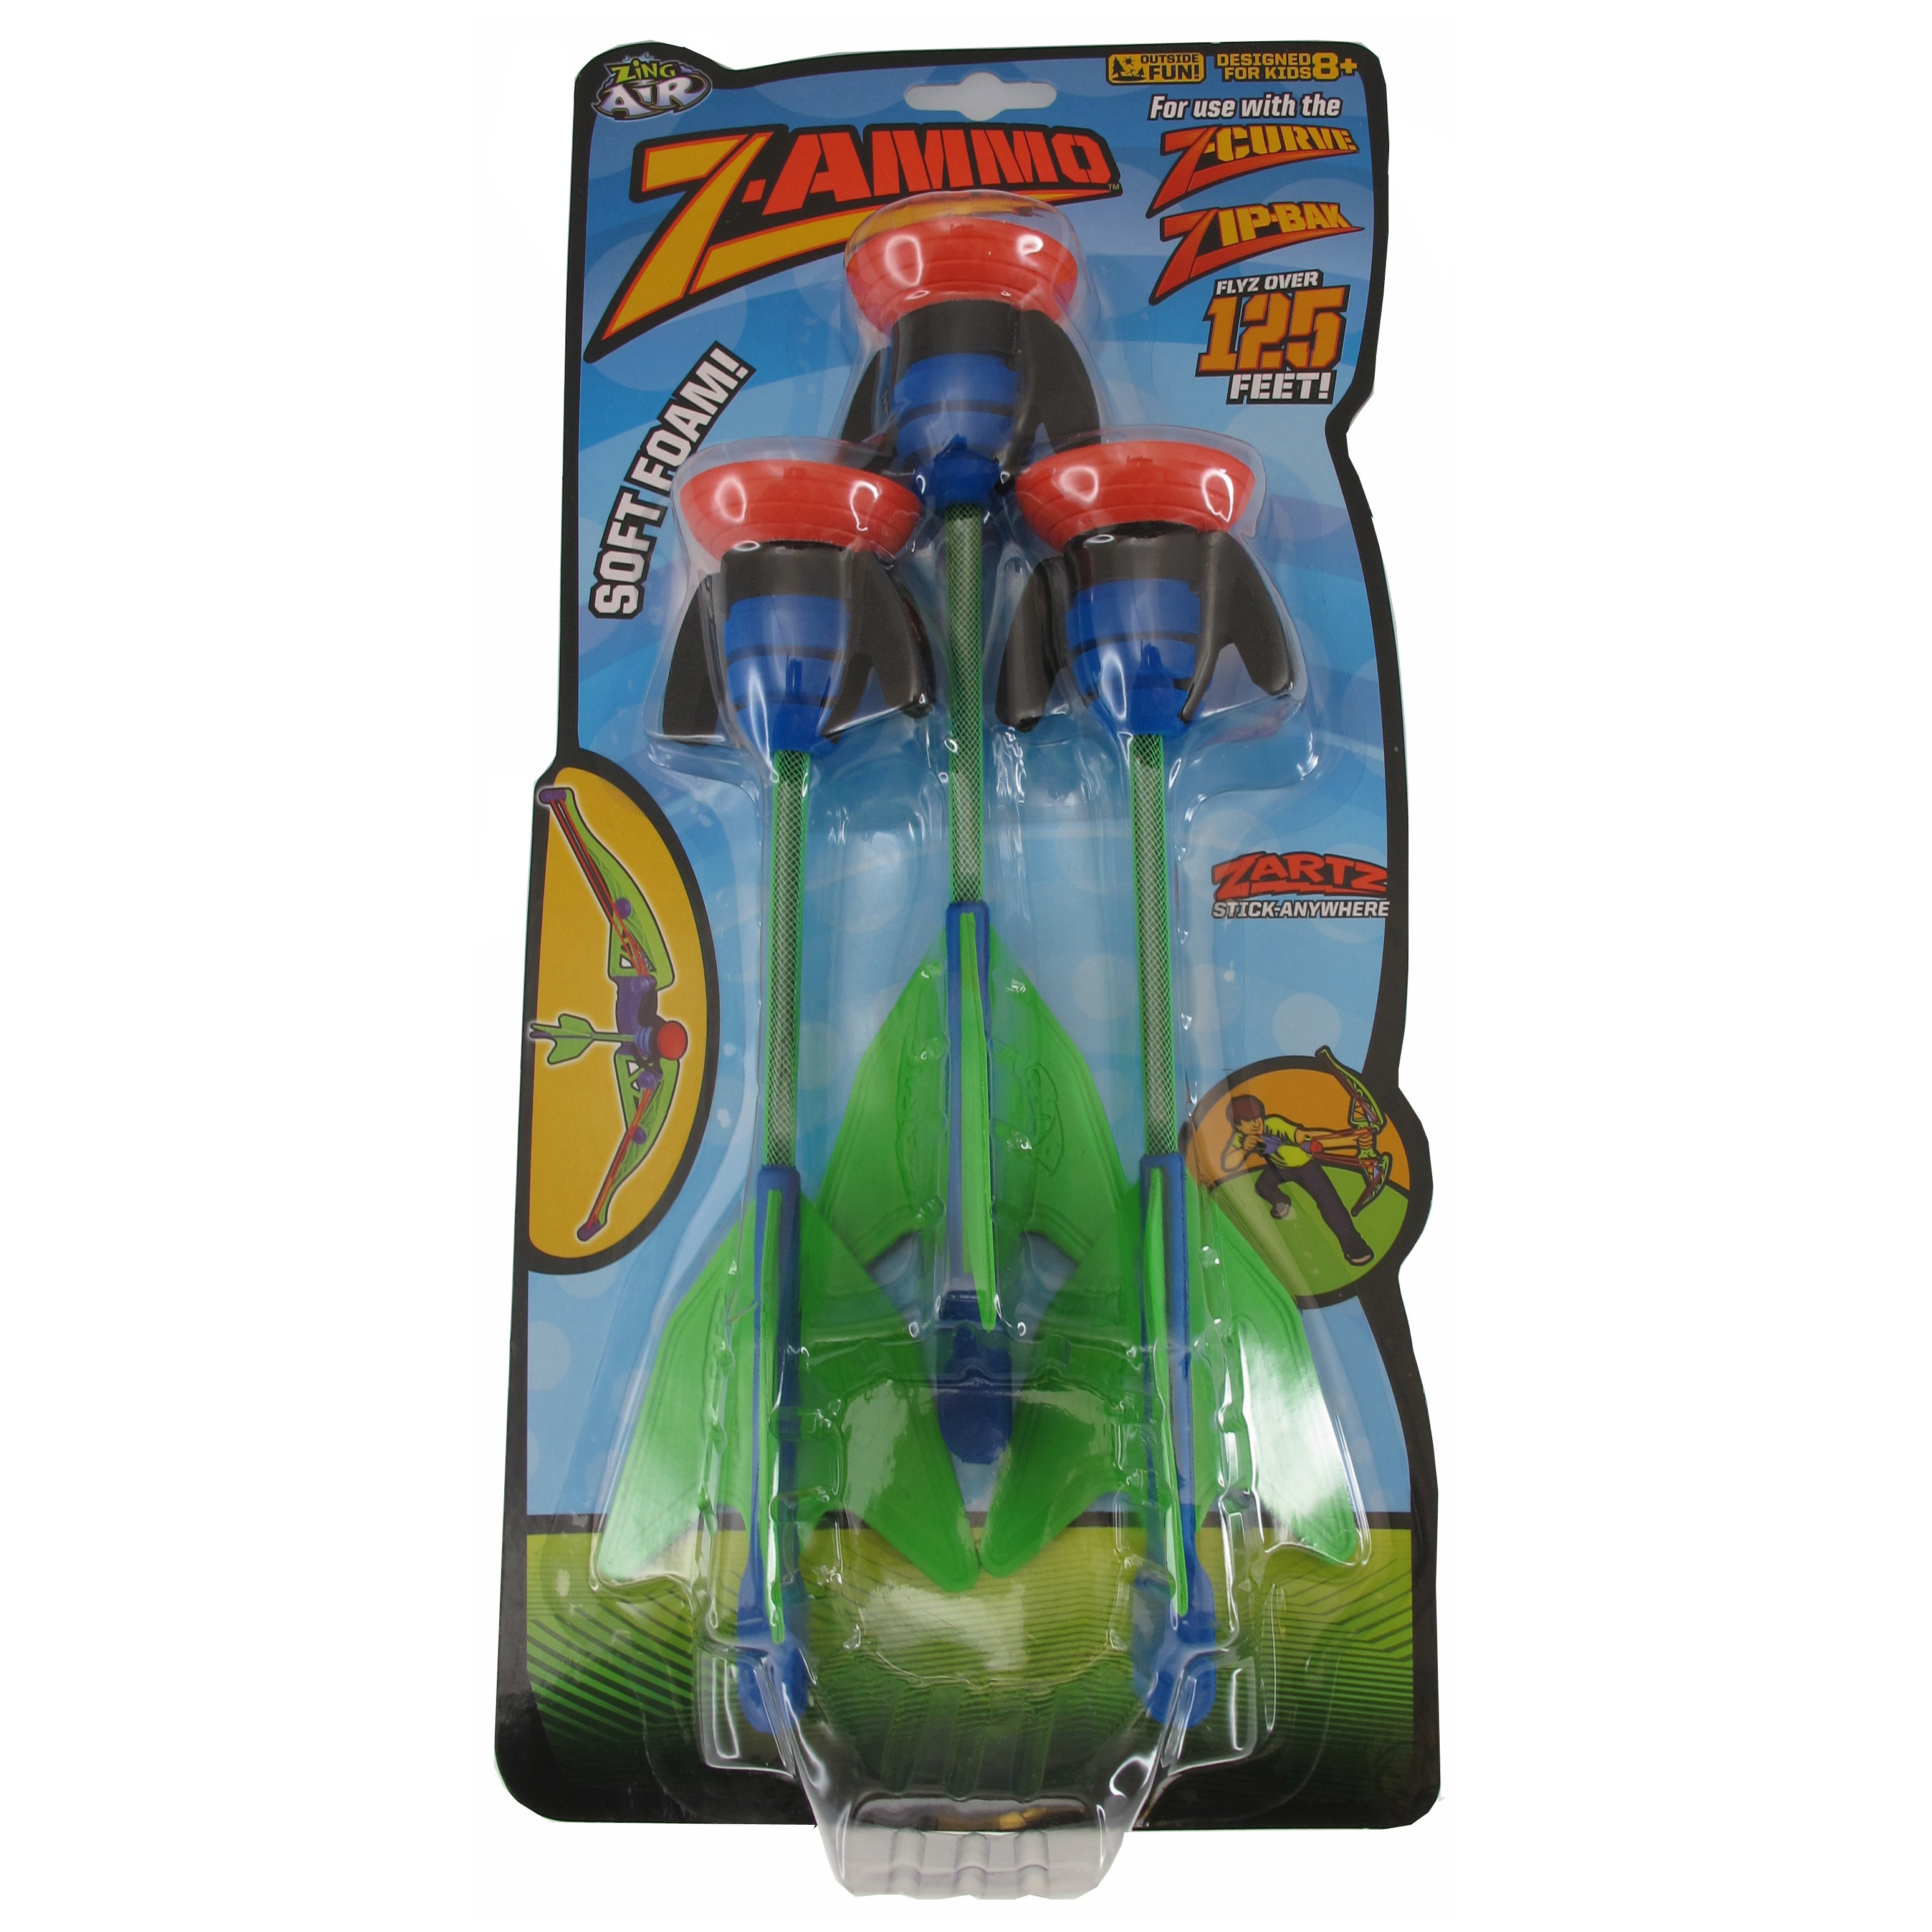 Zing Toys Z-Curve Bow Refill Pack at Sears.com